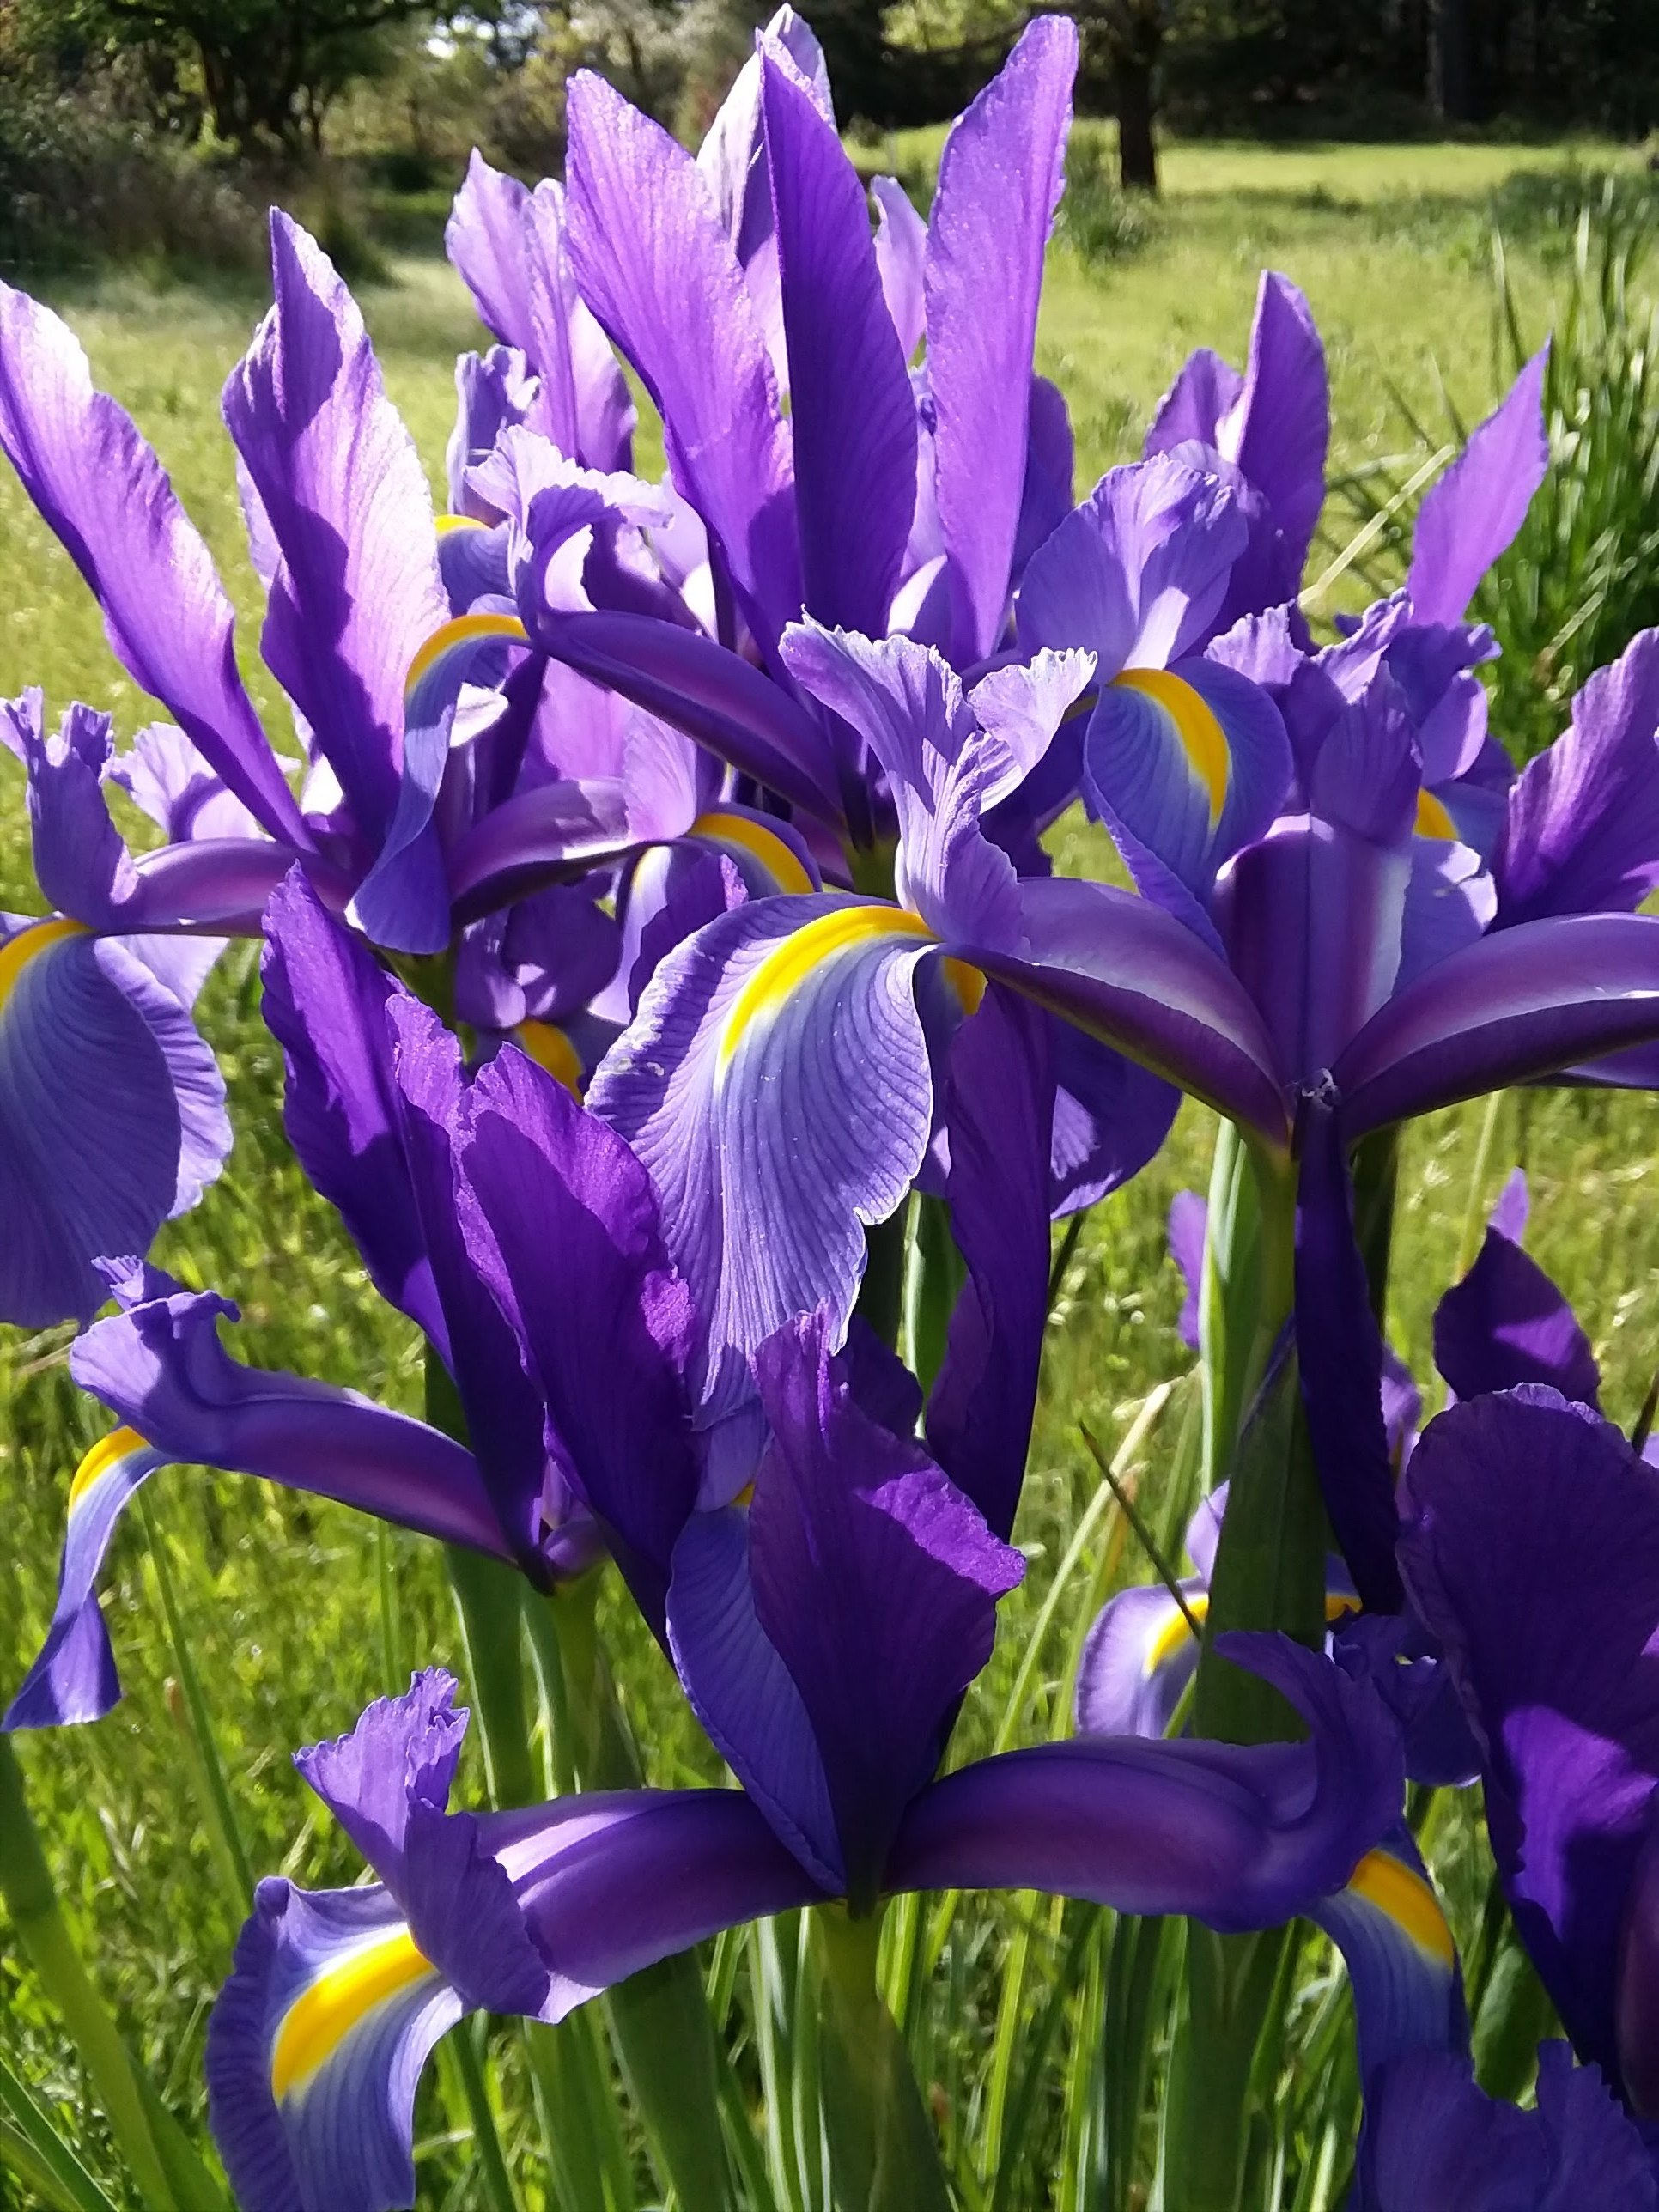 These were growing in the field across from our cabin. I woke up one morning to find several clusters of these wild Iris had bloomed in purples and whites.